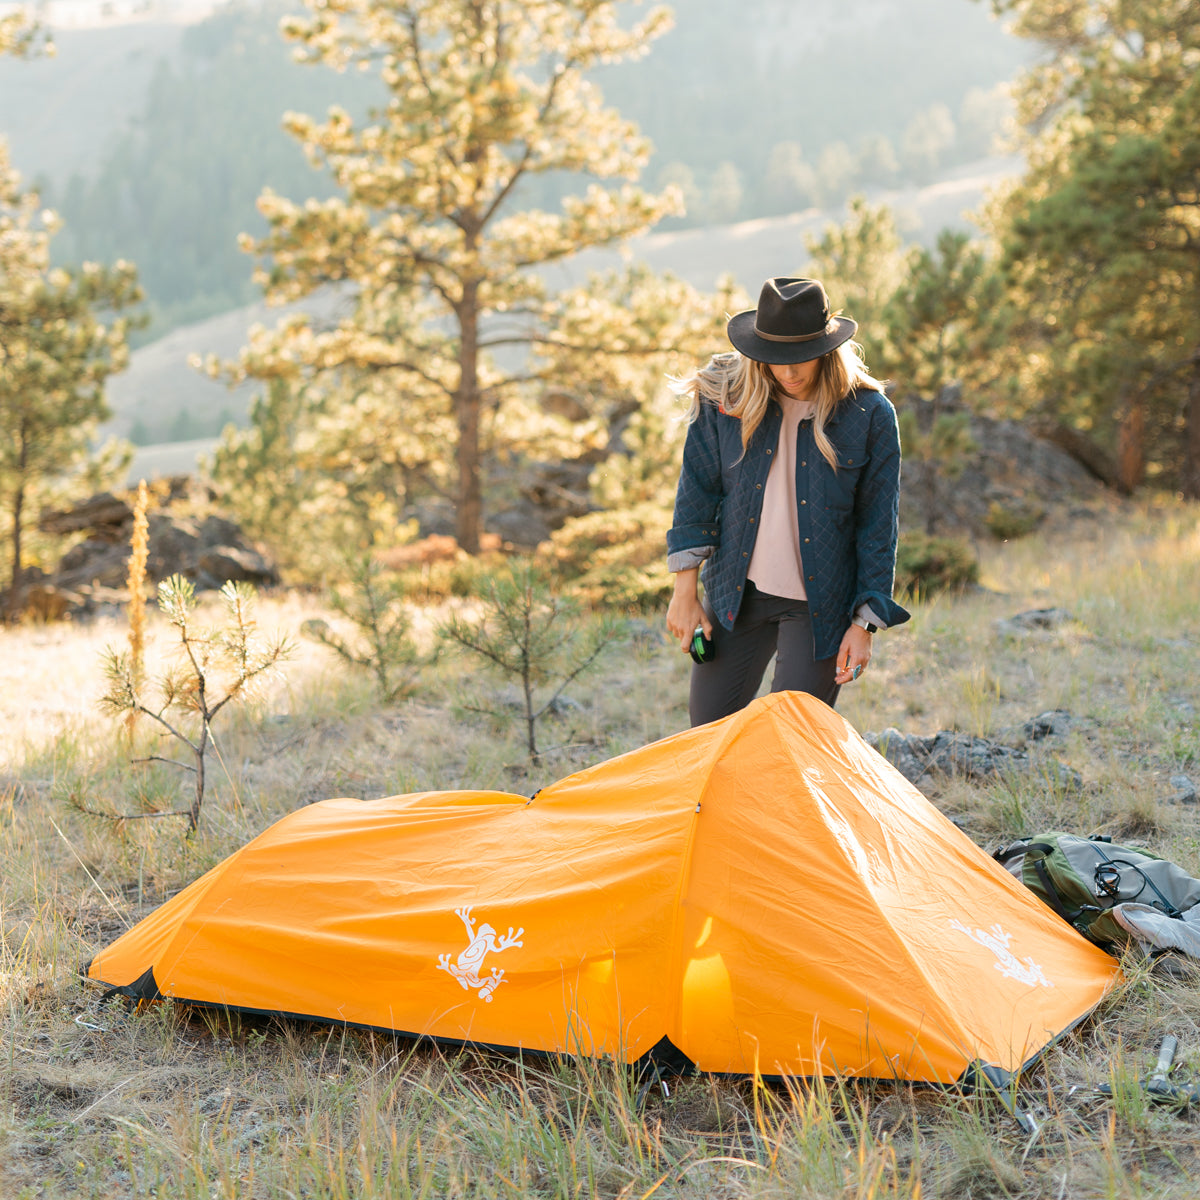 c9c4d7e1454 SOLO 1 PERSON BACKPACKING TENT   RAIN FLY